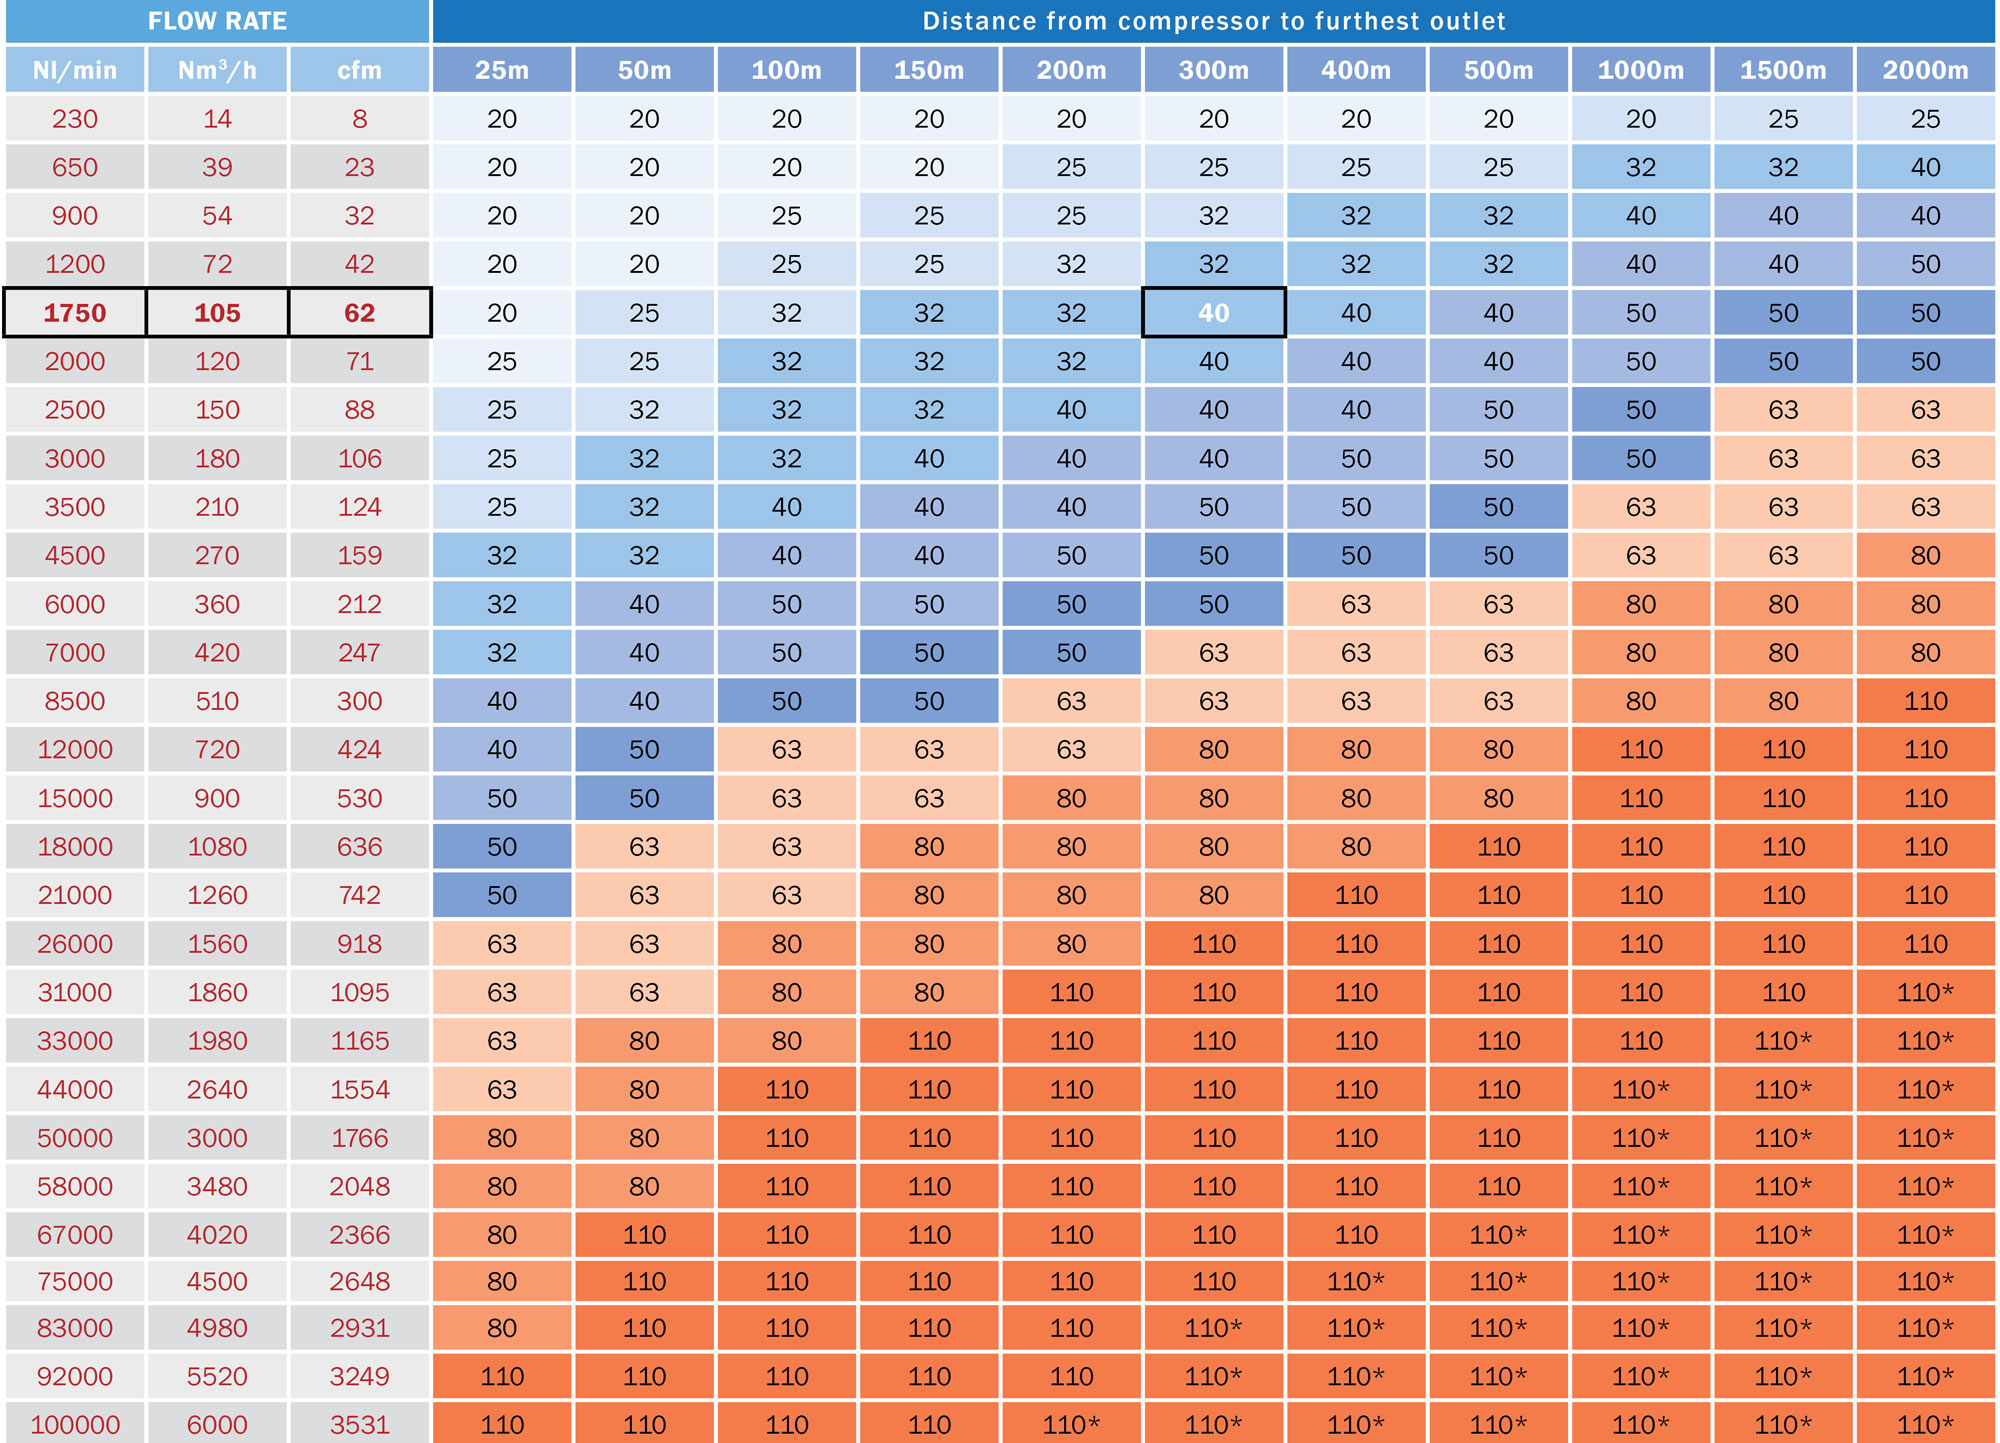 Air Compressor Sizing Spreadsheet With Compressed Air Pipe